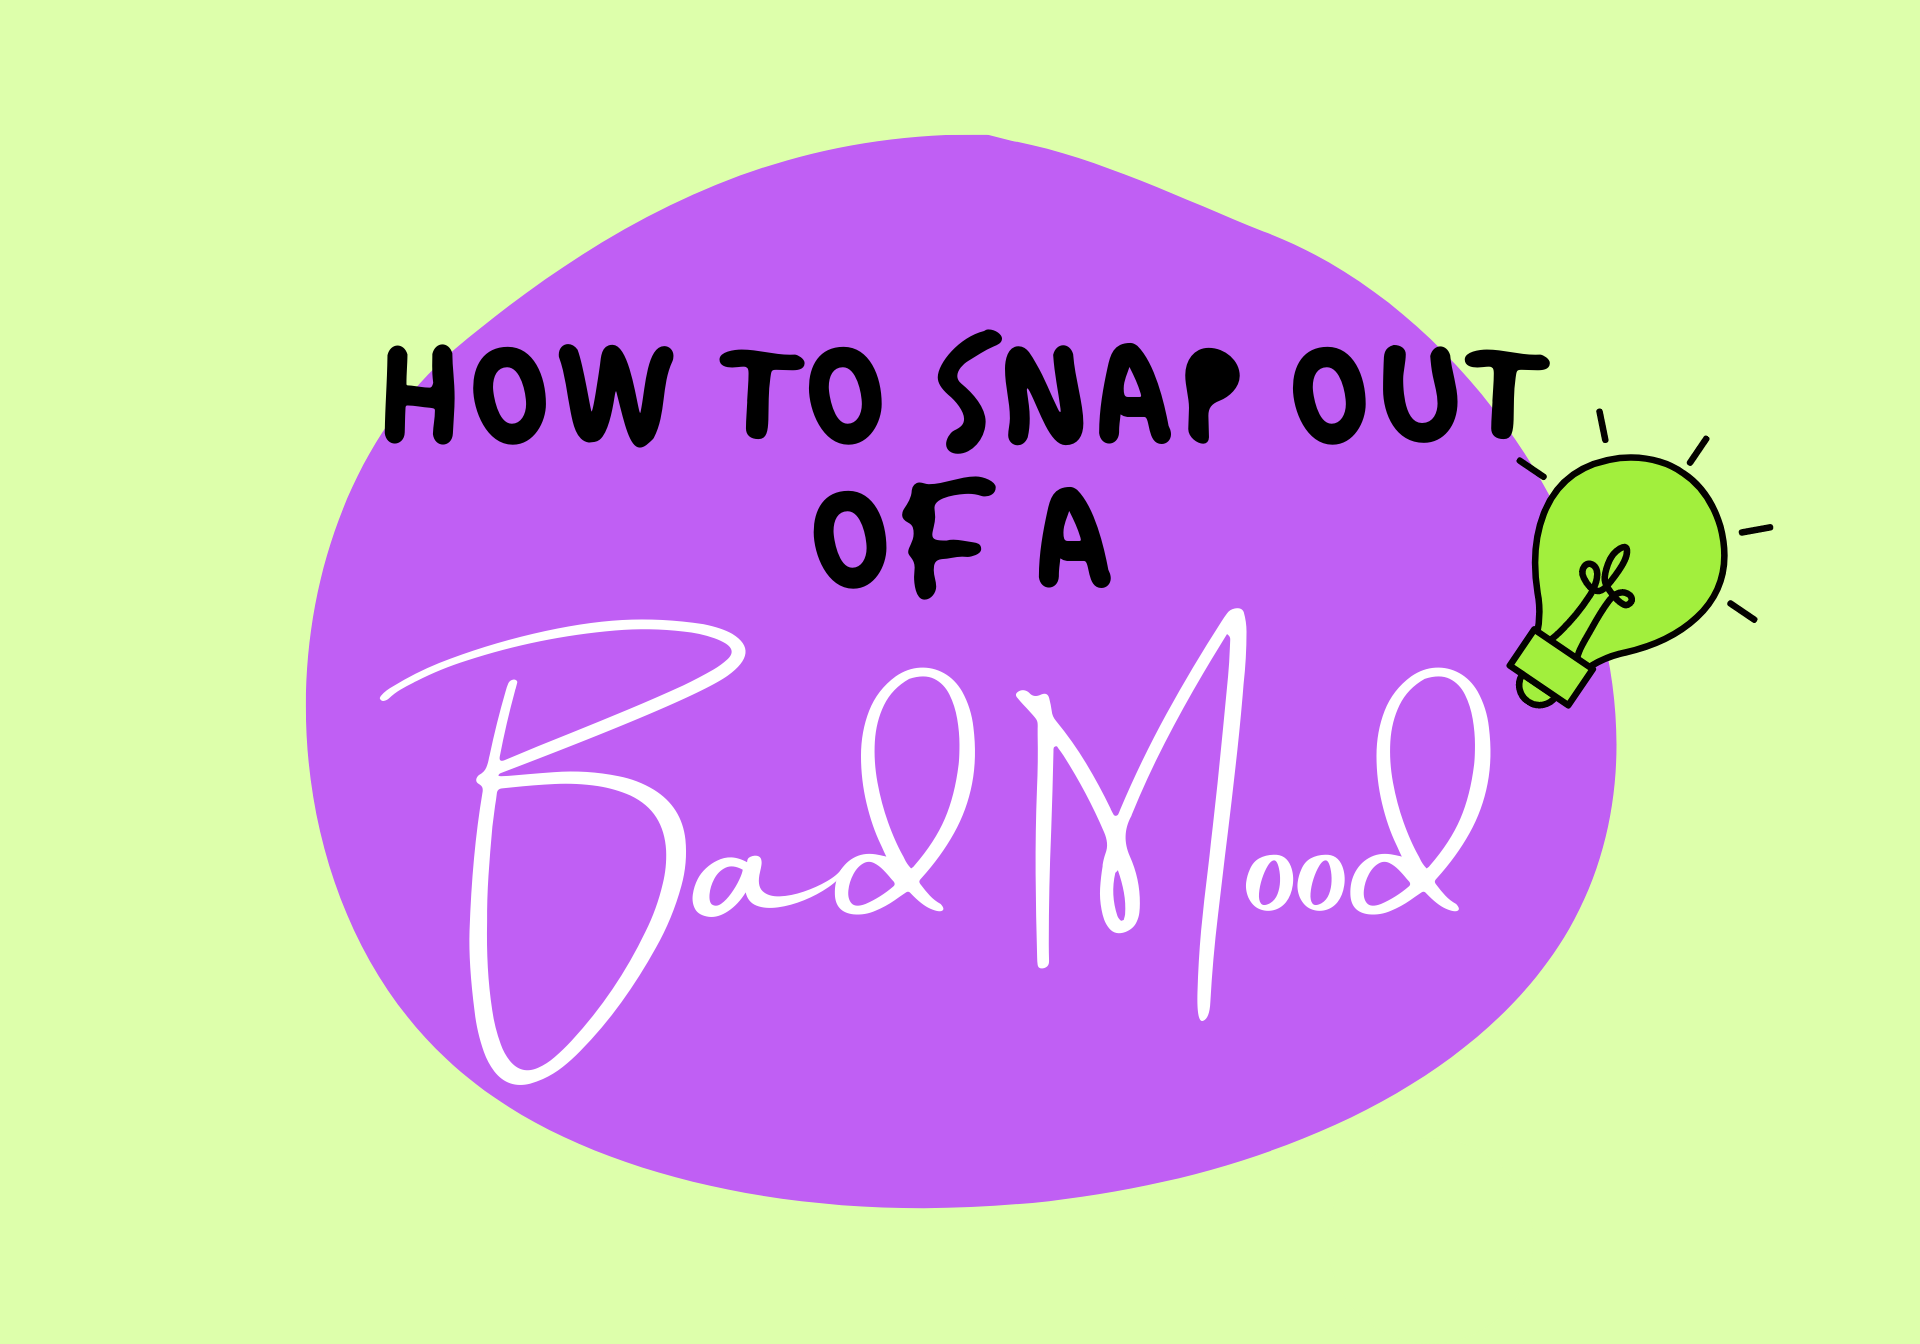 How To Snap Out Of A Bad Mood